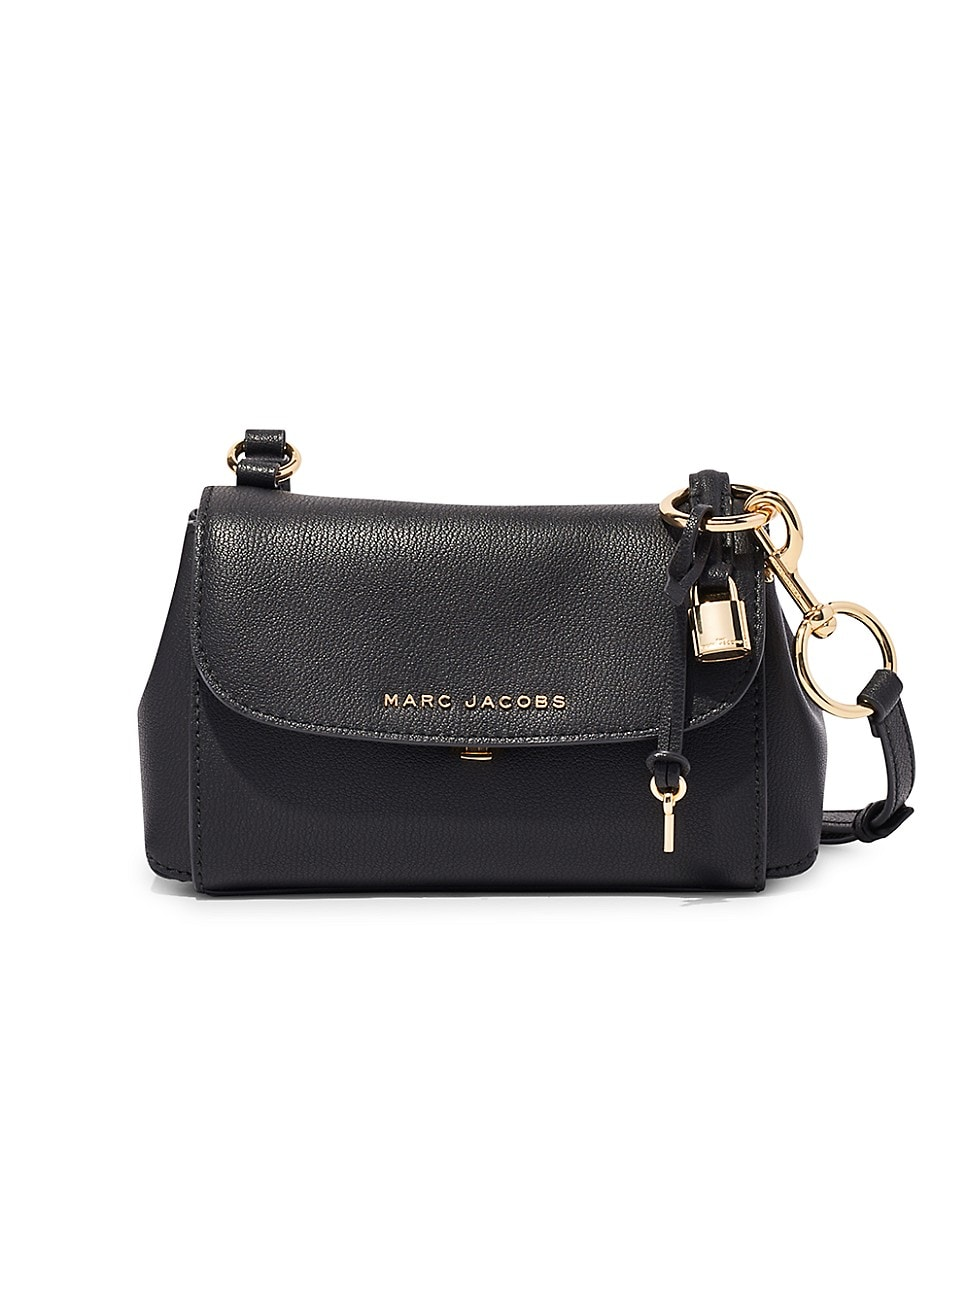 The Marc Jacobs WOMEN'S LEATHER CROSSBODY BAG